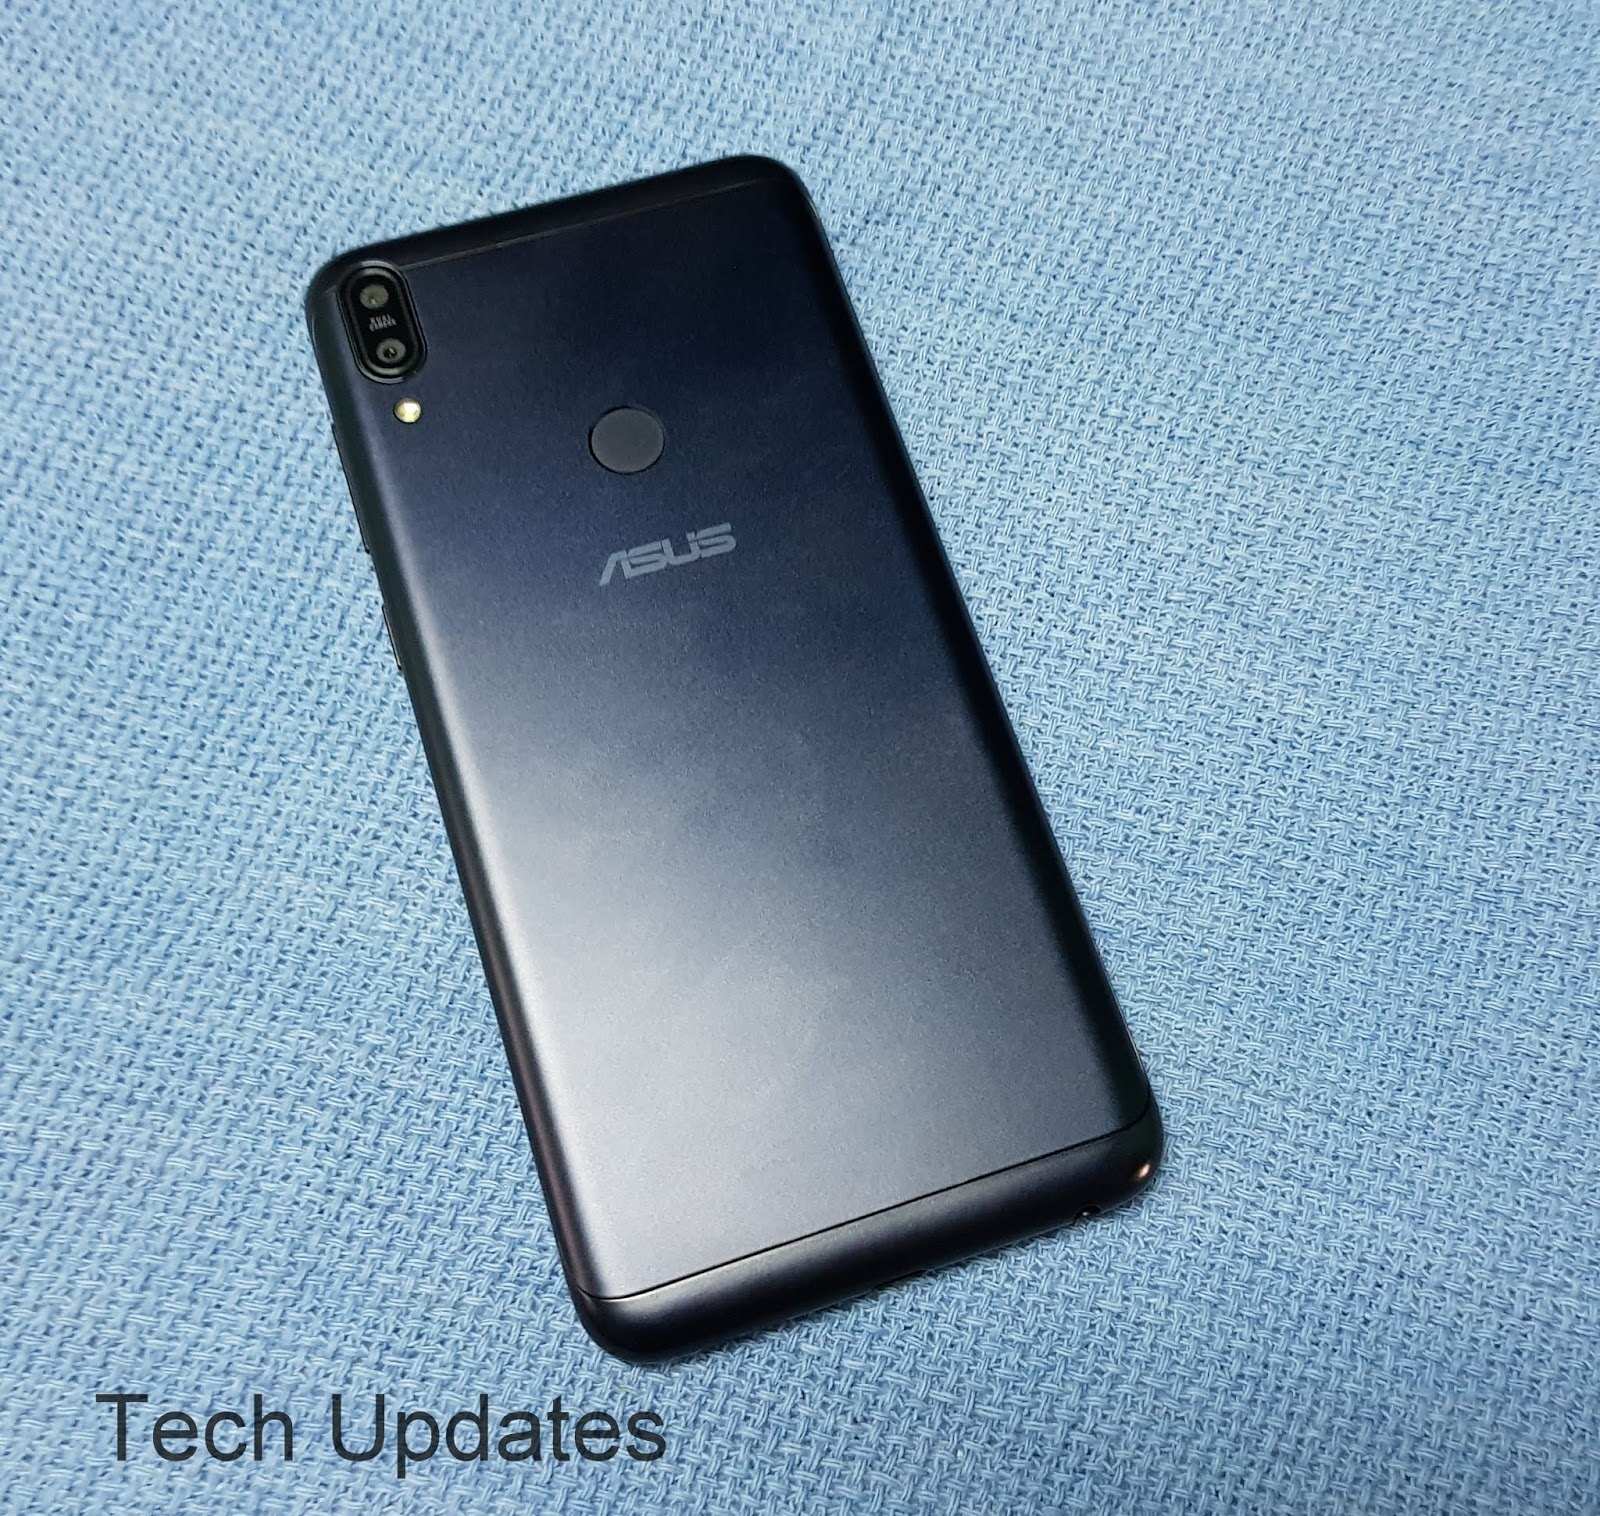 Asus Zenfone Max Pro M1 Tips, Tricks, Pros & Cons - Tech Updates